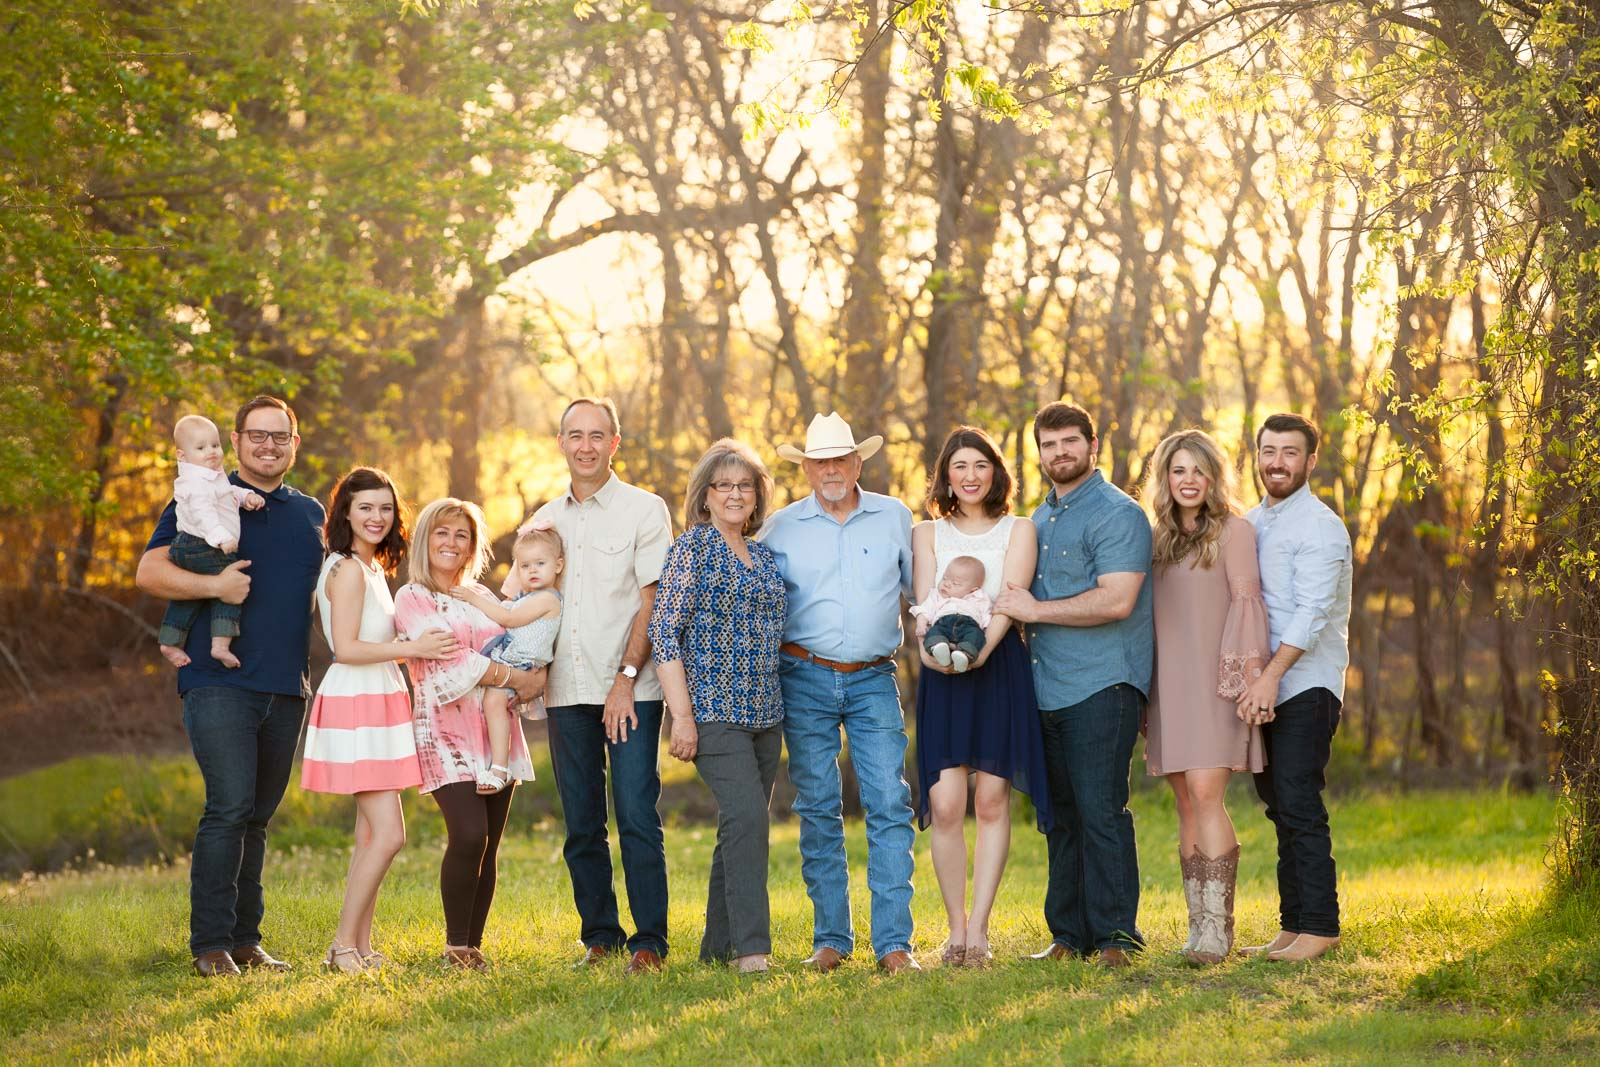 How to take great extended family photos